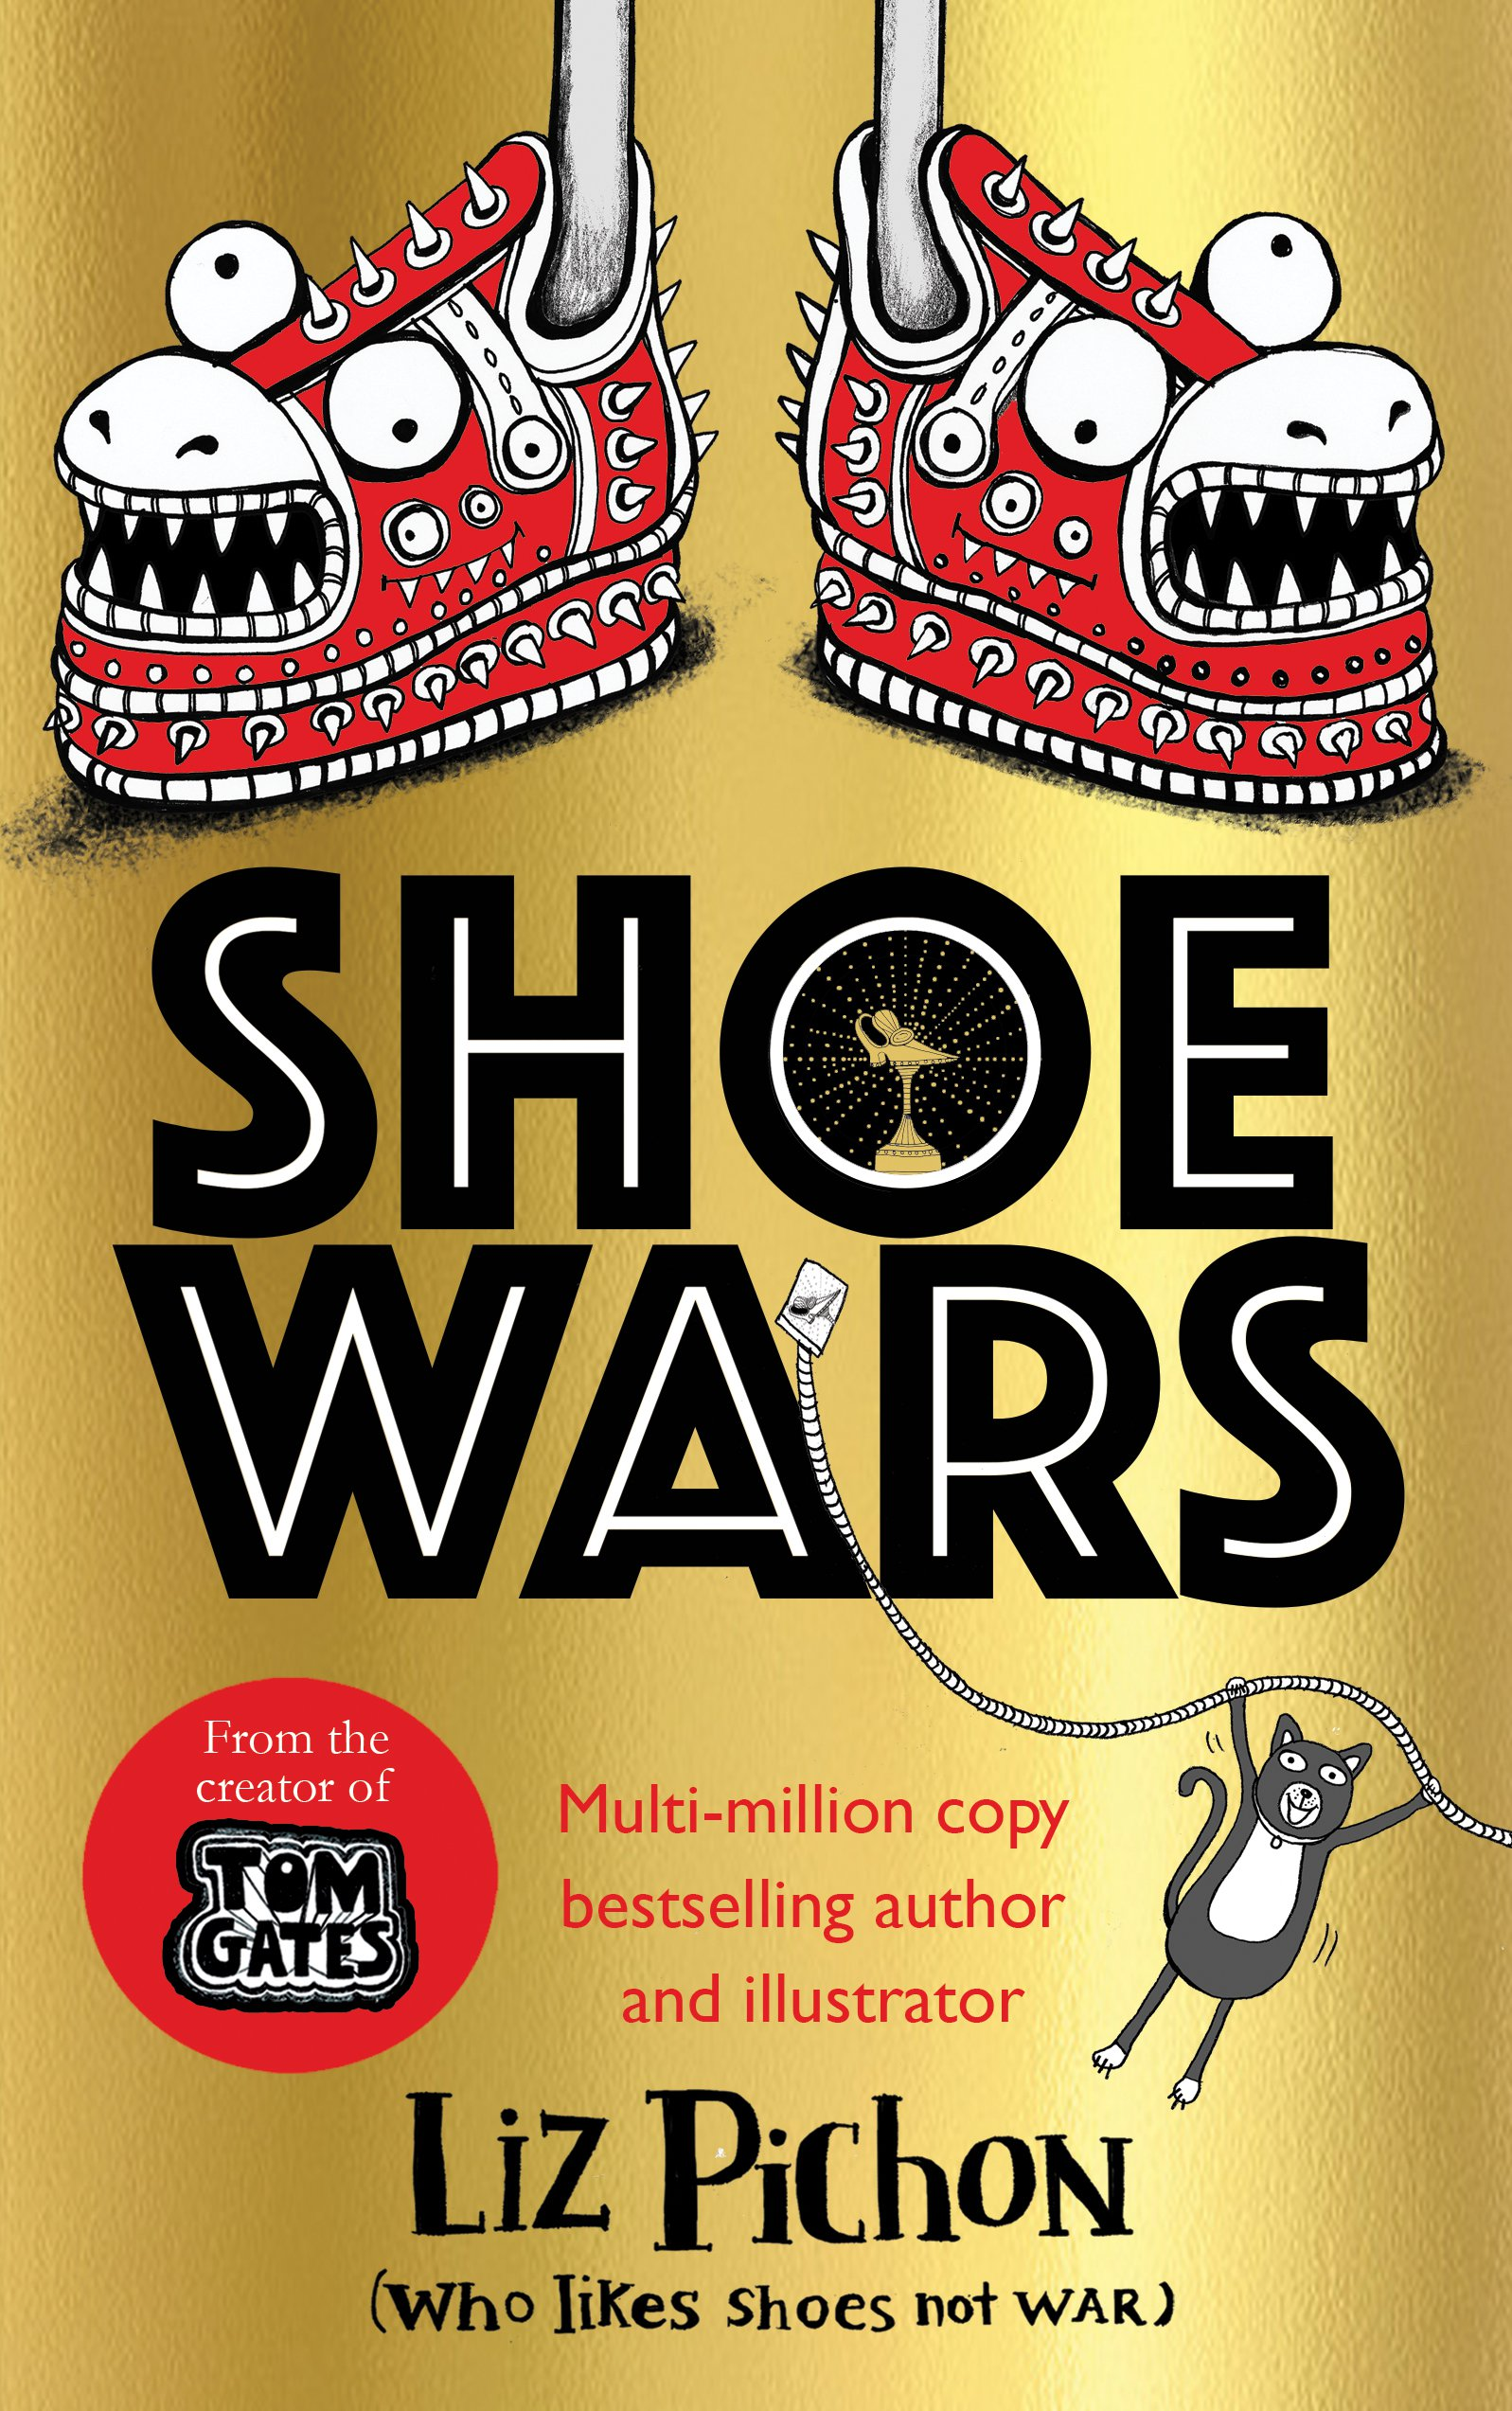 Shoe Wars cover